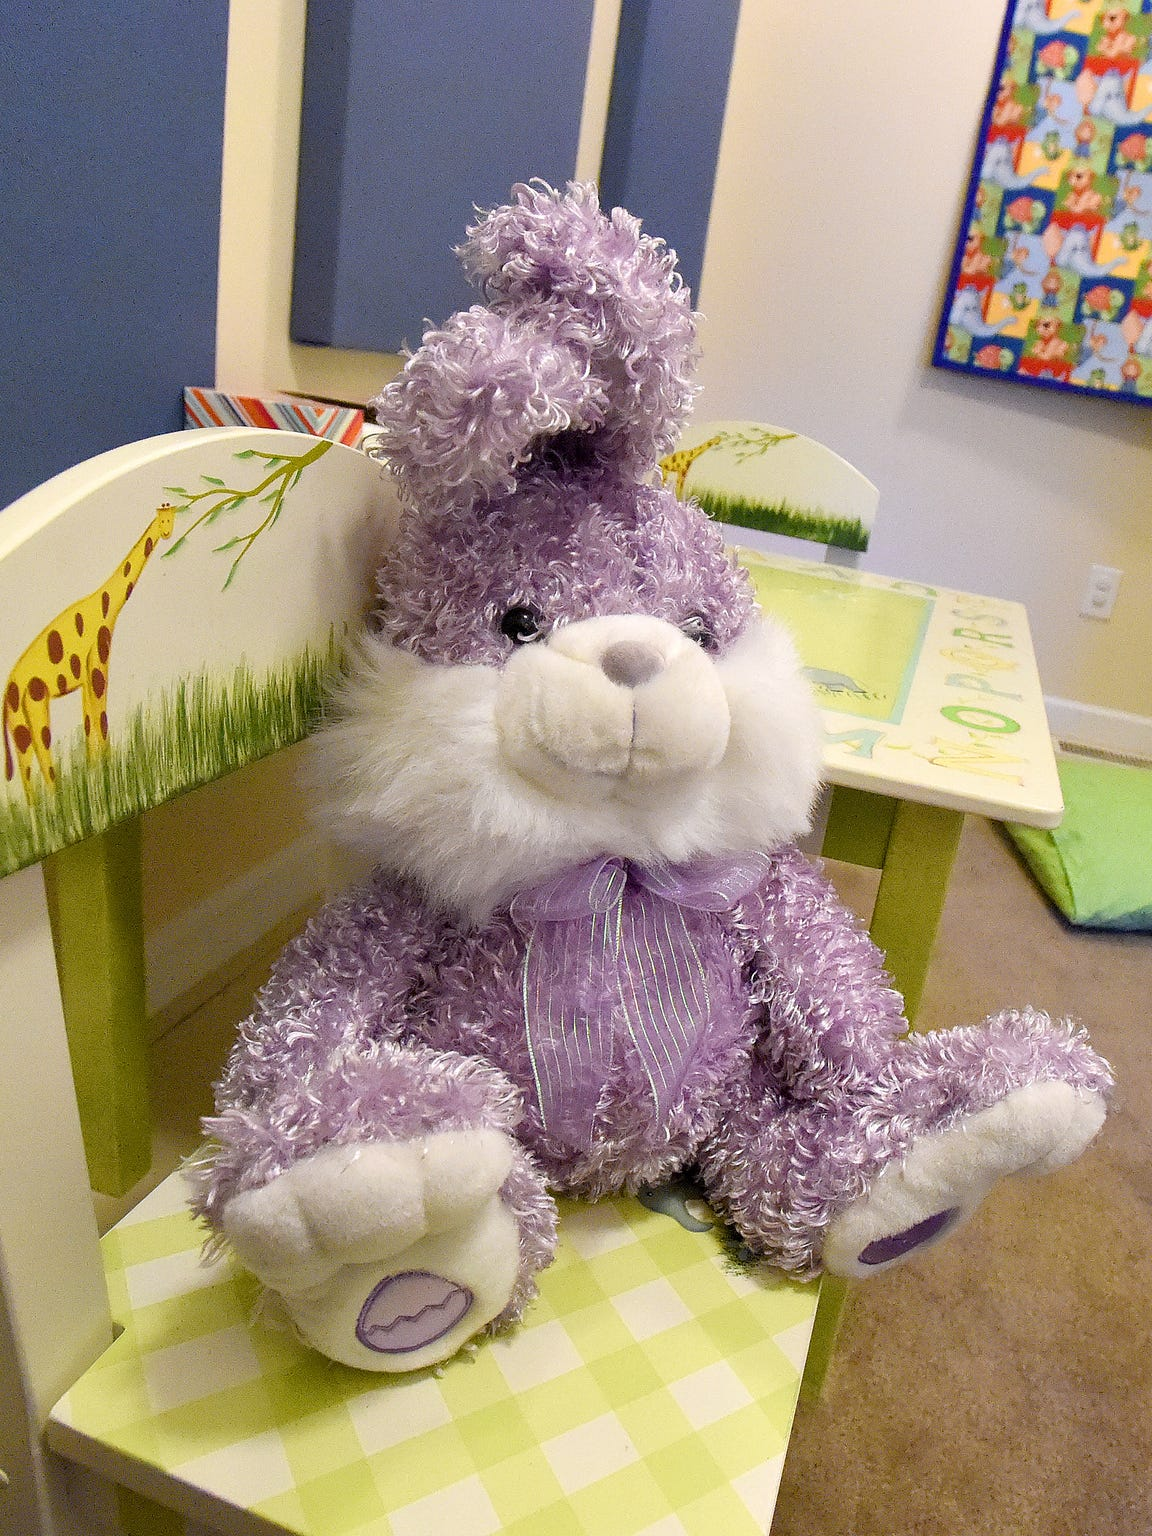 A stuffed rabbit rests on one of two chairs in one of the two interview rooms at the Valley Children's Advocacy Center in Staunton.